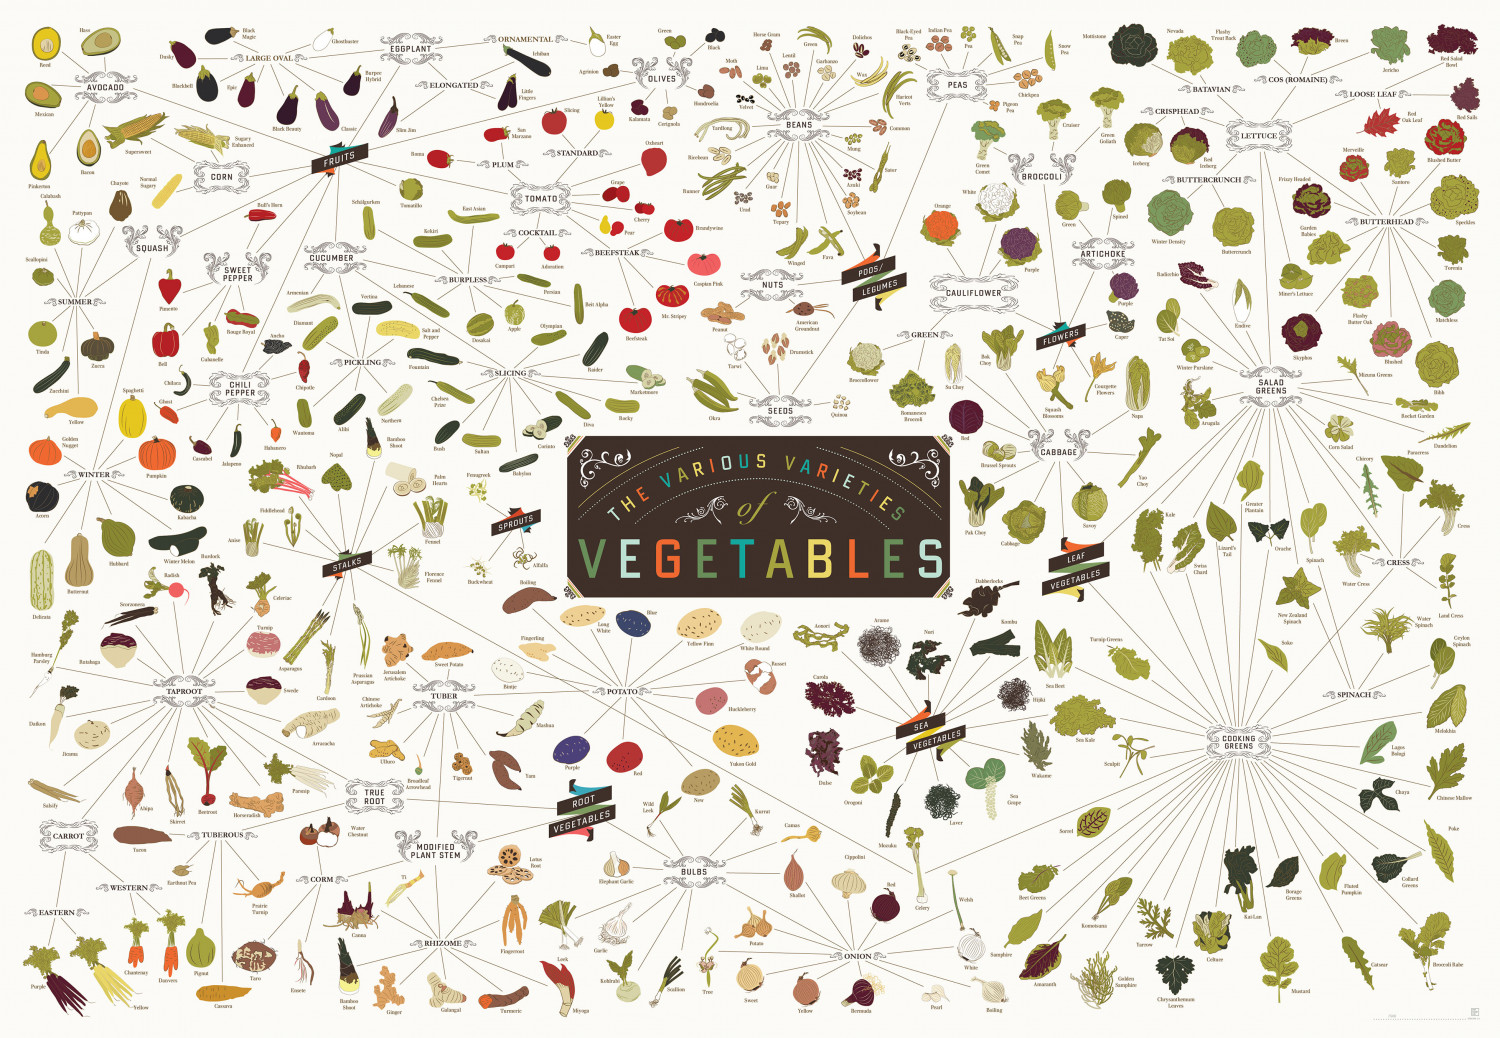 The Various Varieties of Vegetables Infographic